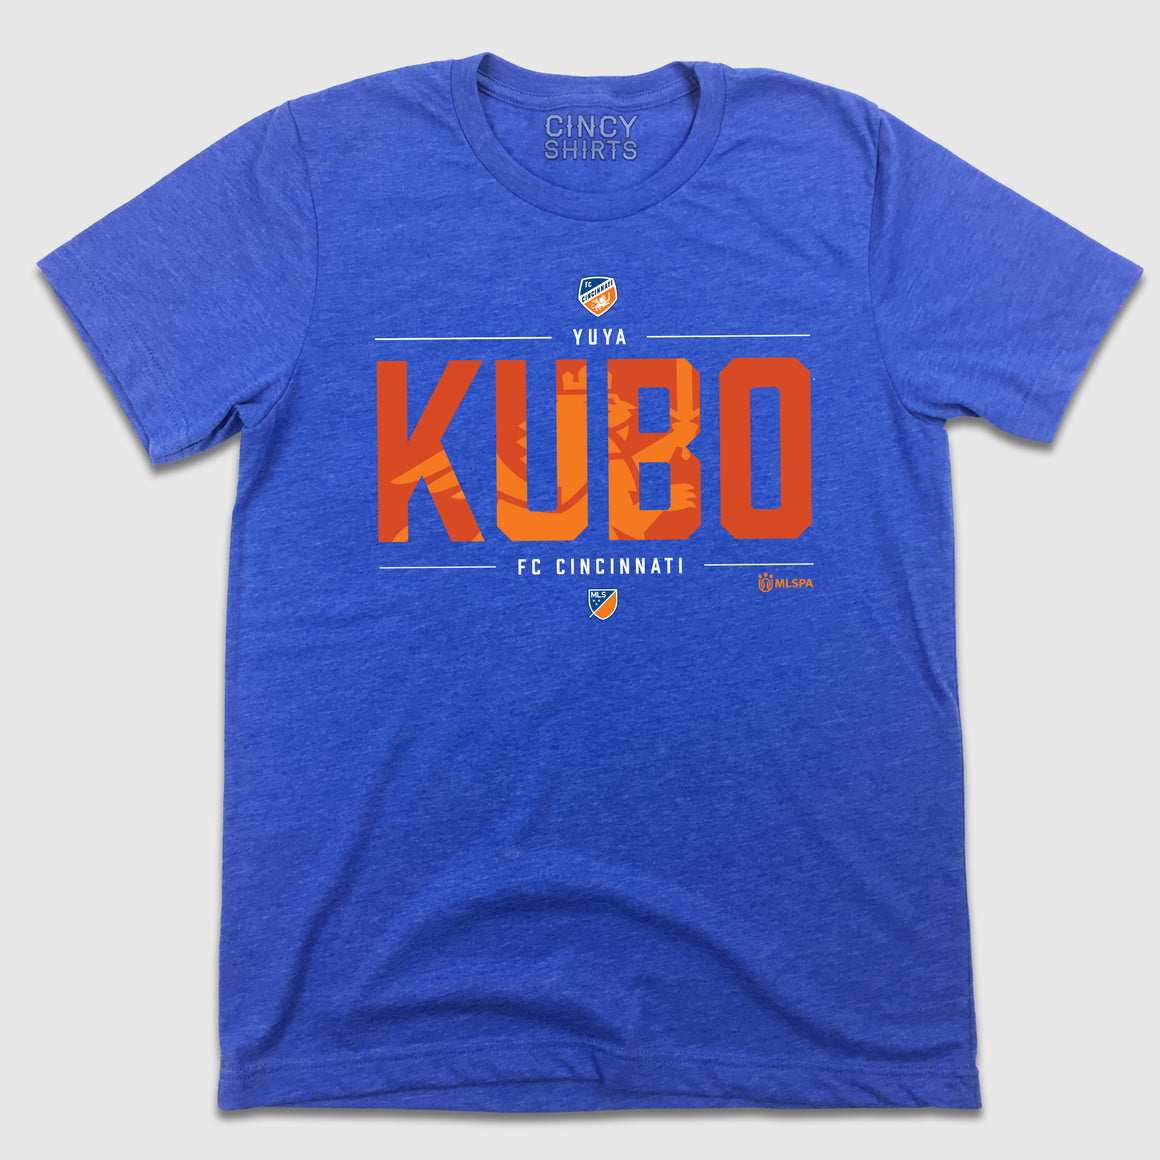 Official Yuya Kubo MLSPA Designer Tee - Cincy Shirts